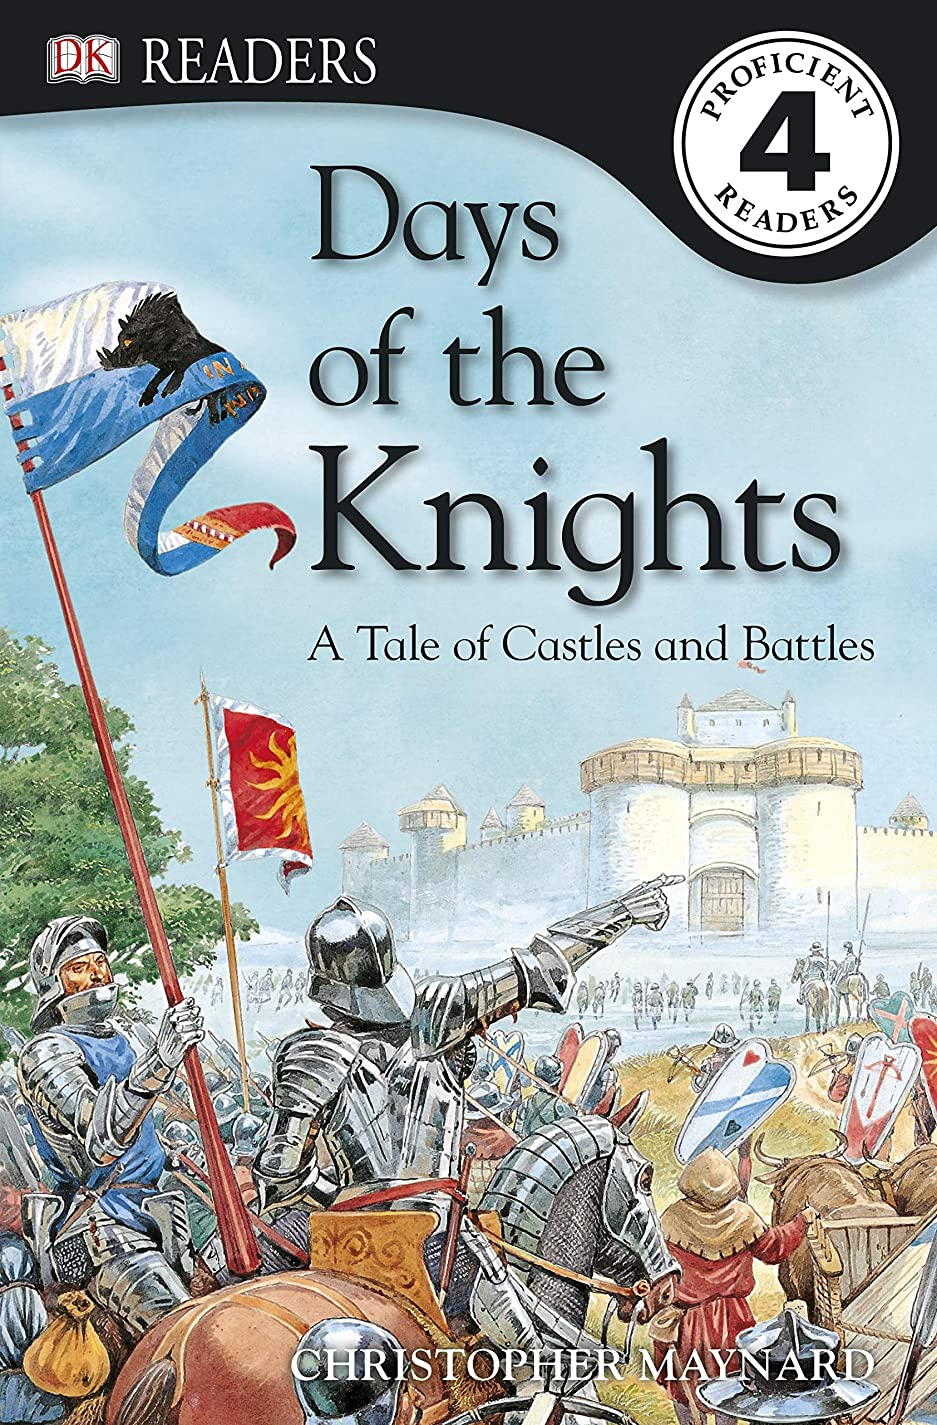 DK Readers L4: Days of the Knights: A Tale of Castles and Battles (DK Readers Level 4) (English Edition)